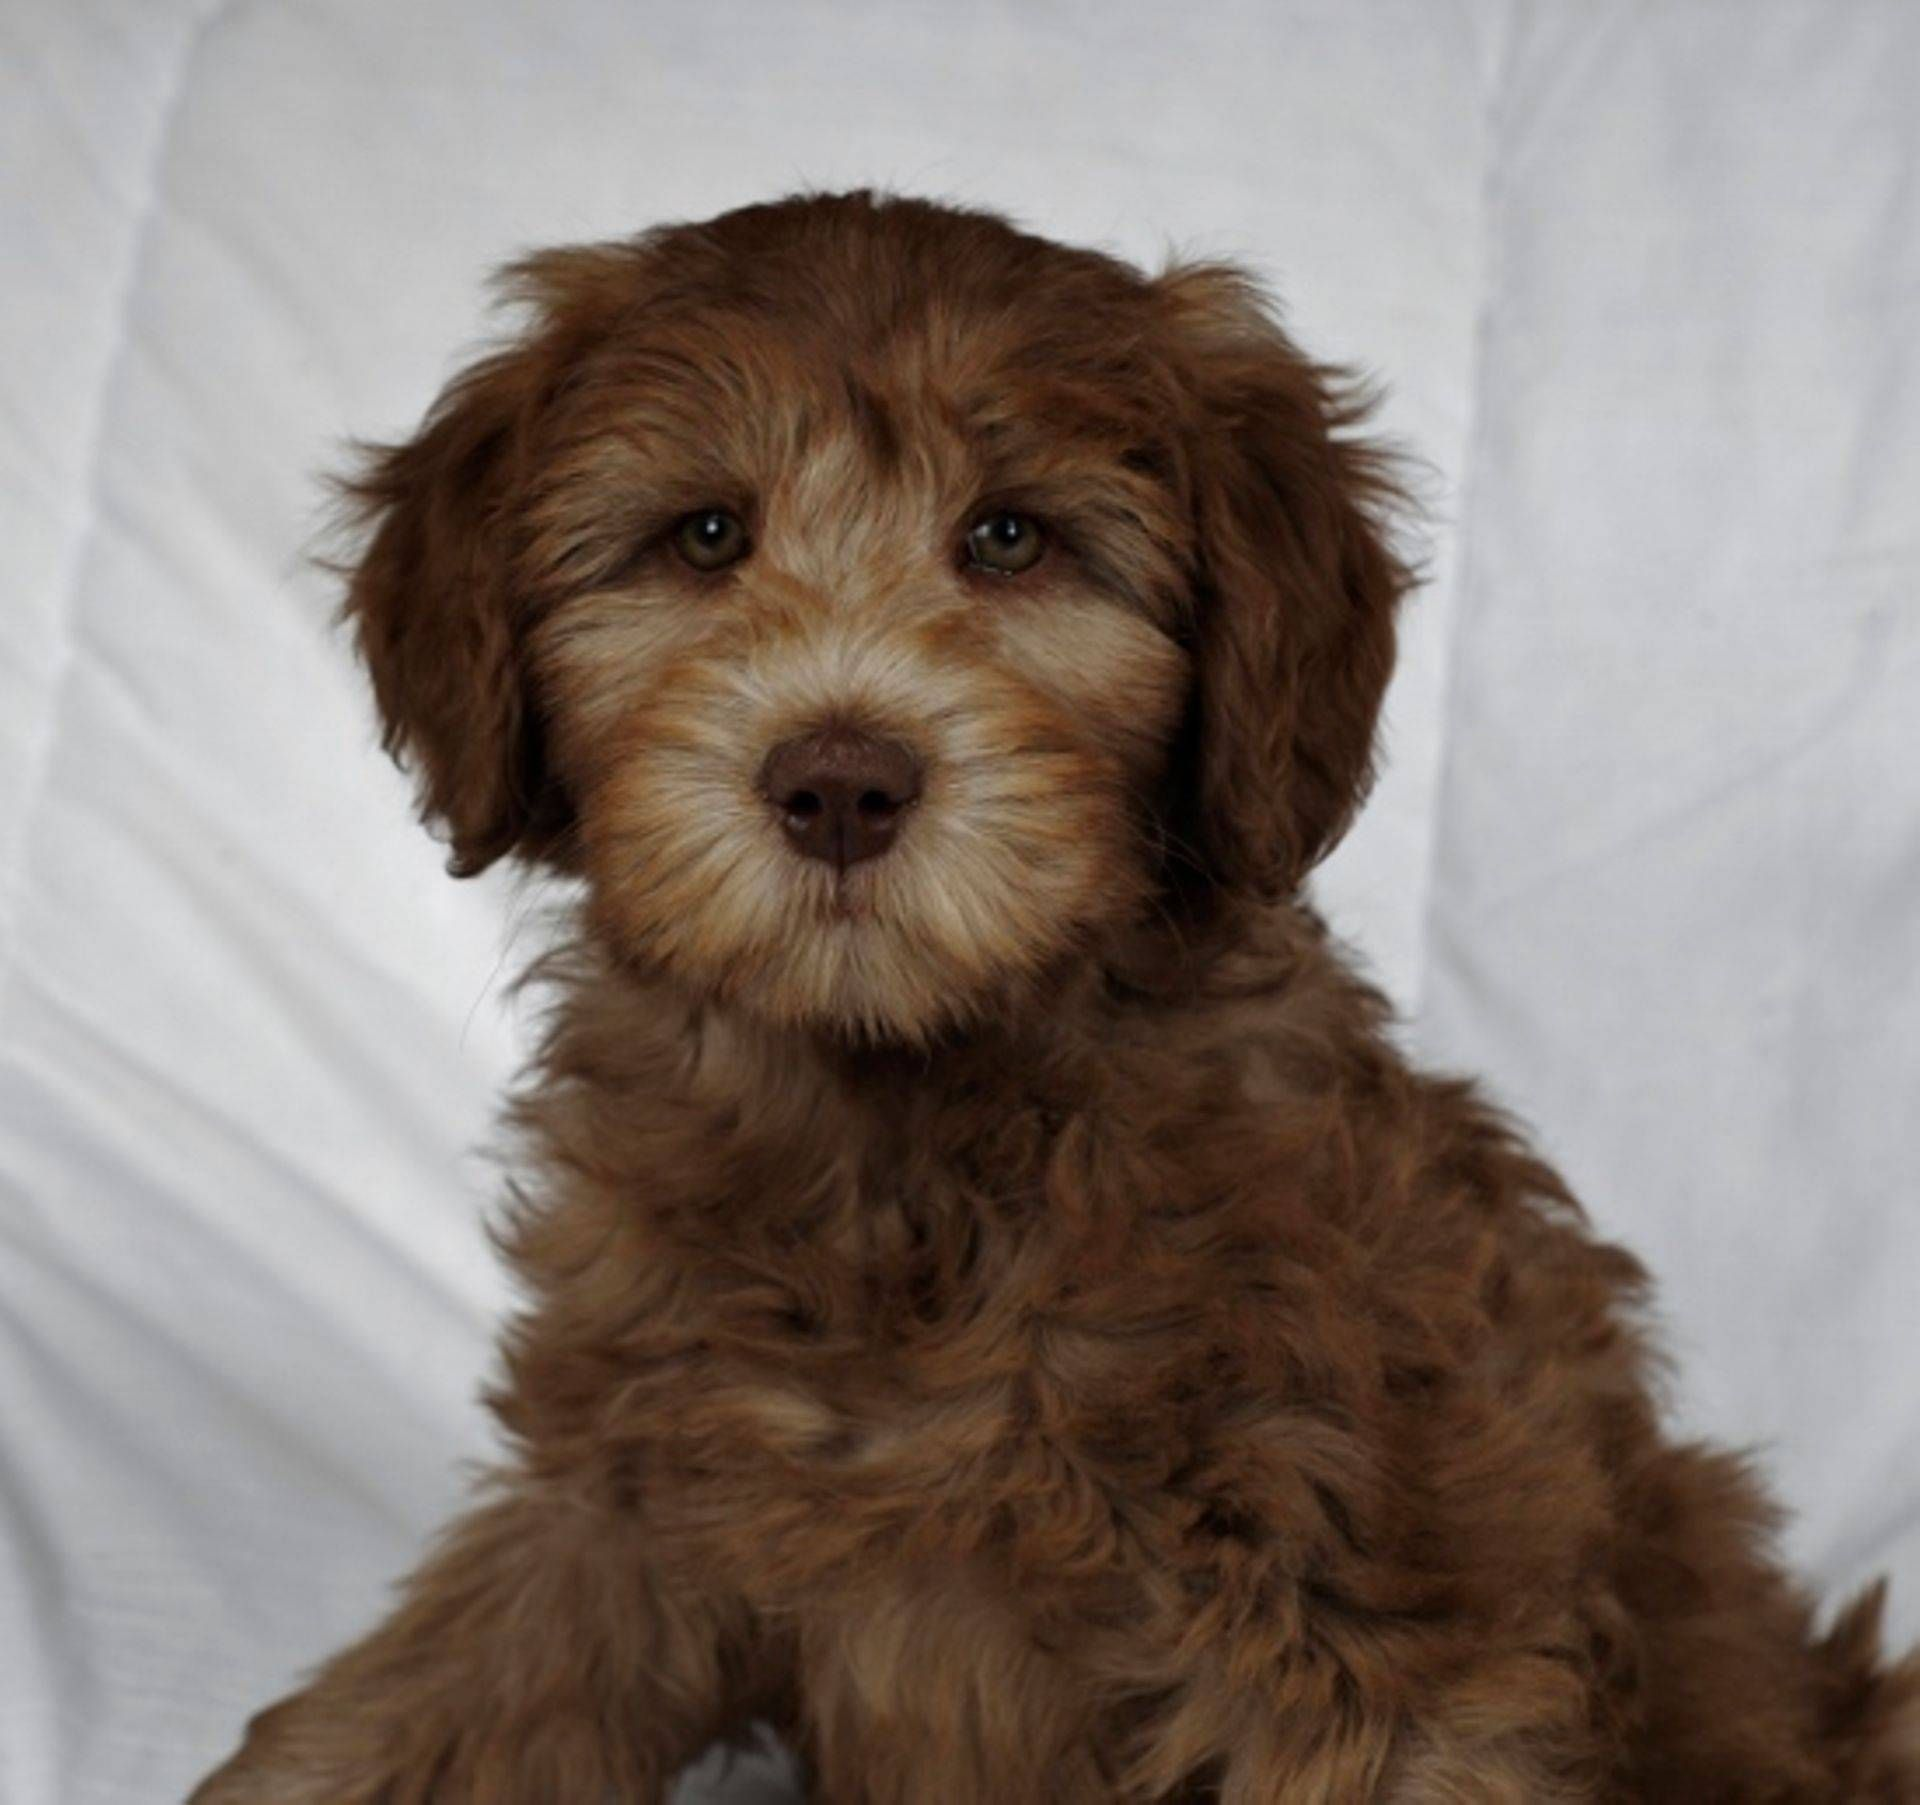 Ontario Labradoodle Breeder Specializing In Australian Labradoodles In All Sizes Parents Fully Health Test Labradoodle Labradoodle Puppy Labradoodle Breeders